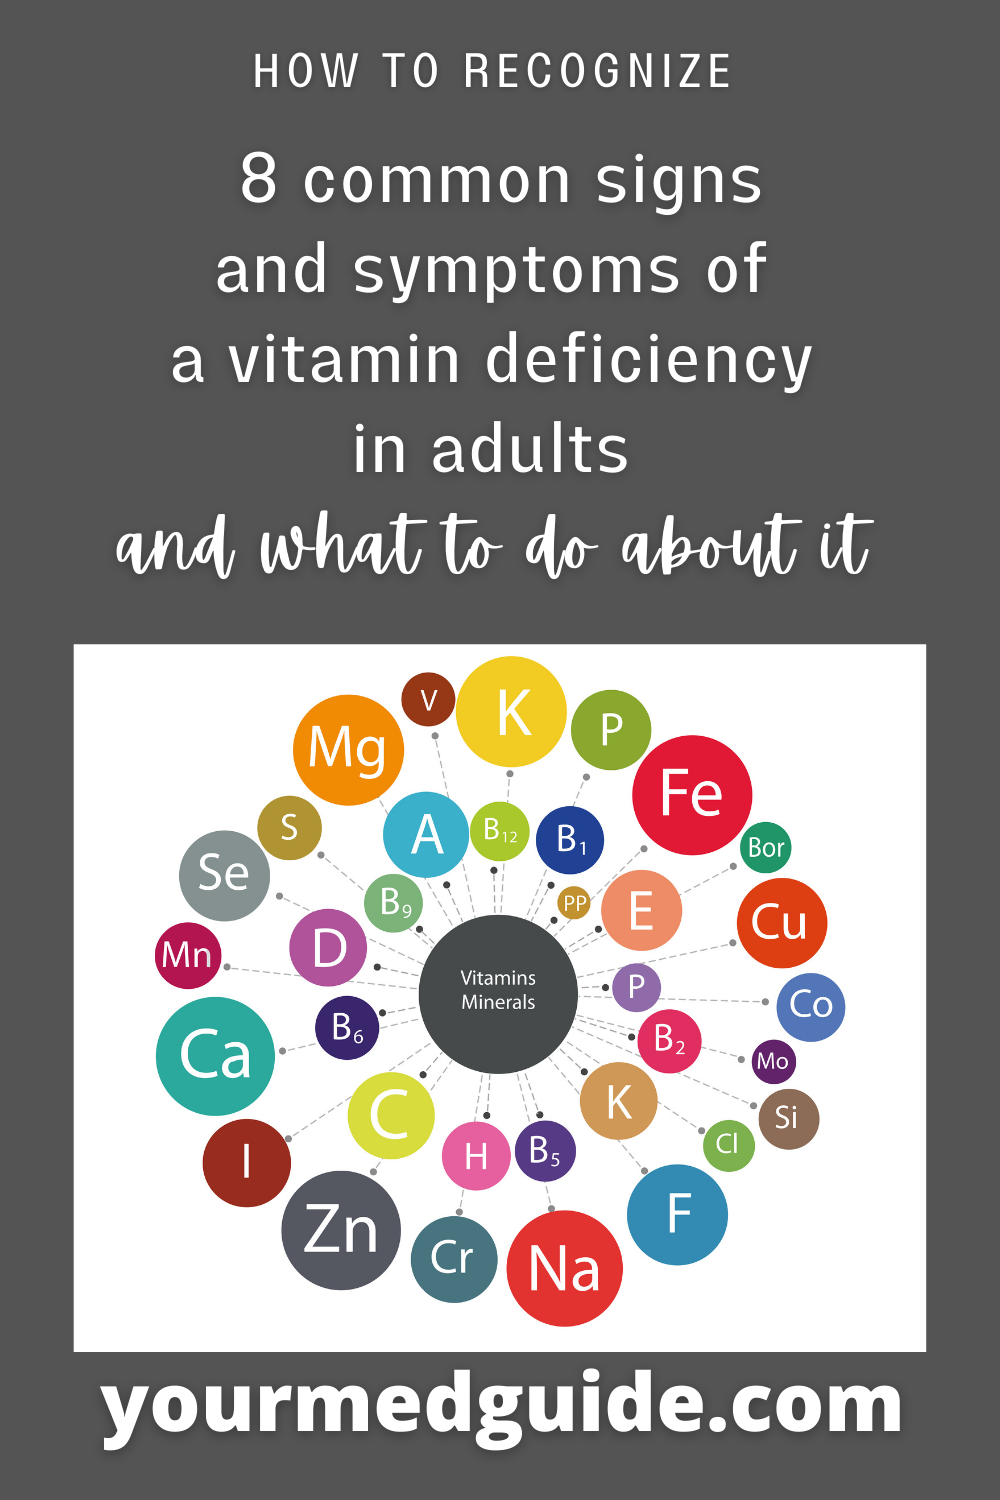 How to recognize 8 common signs and symptoms of a vitamin deficiency in adults